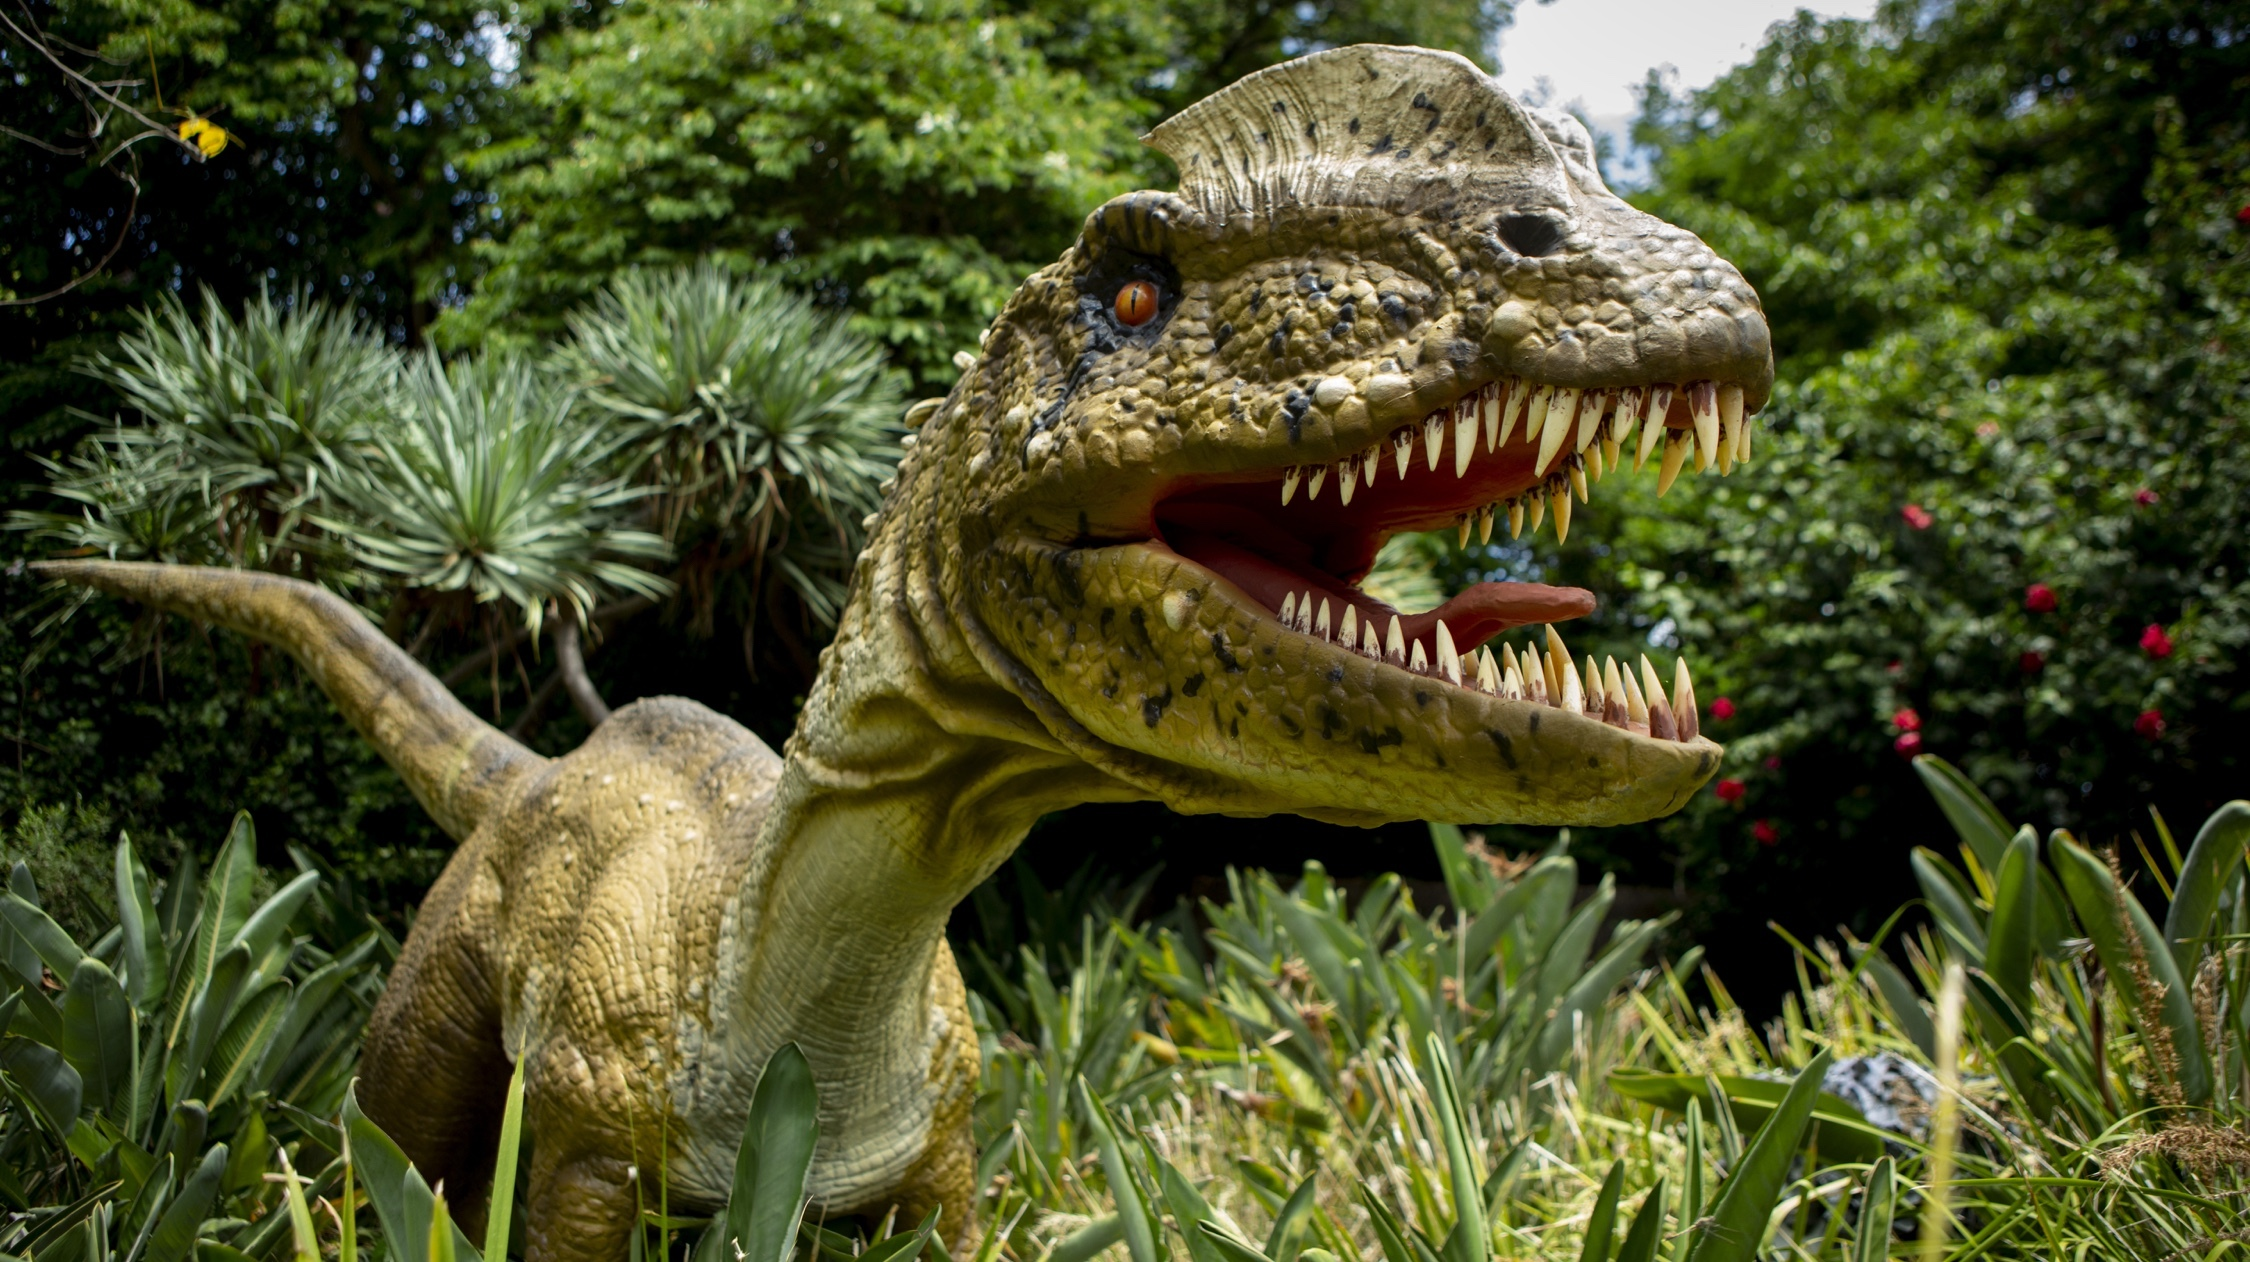 Carnivore dinosaur at Melbourne Zoo